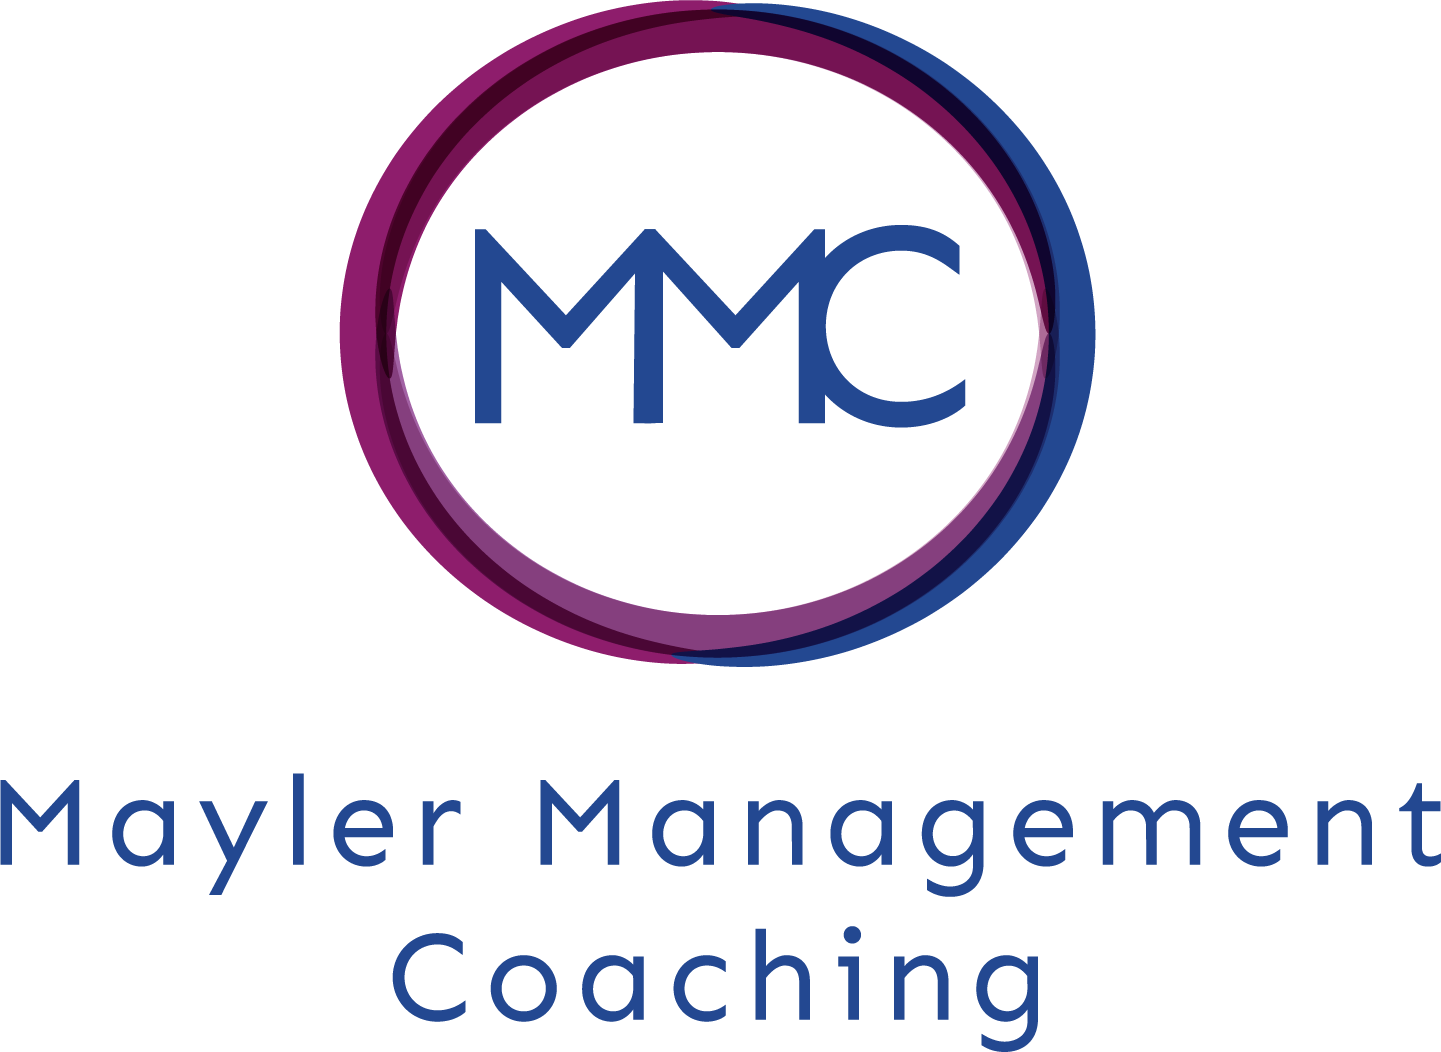 Mayler Management Coaching